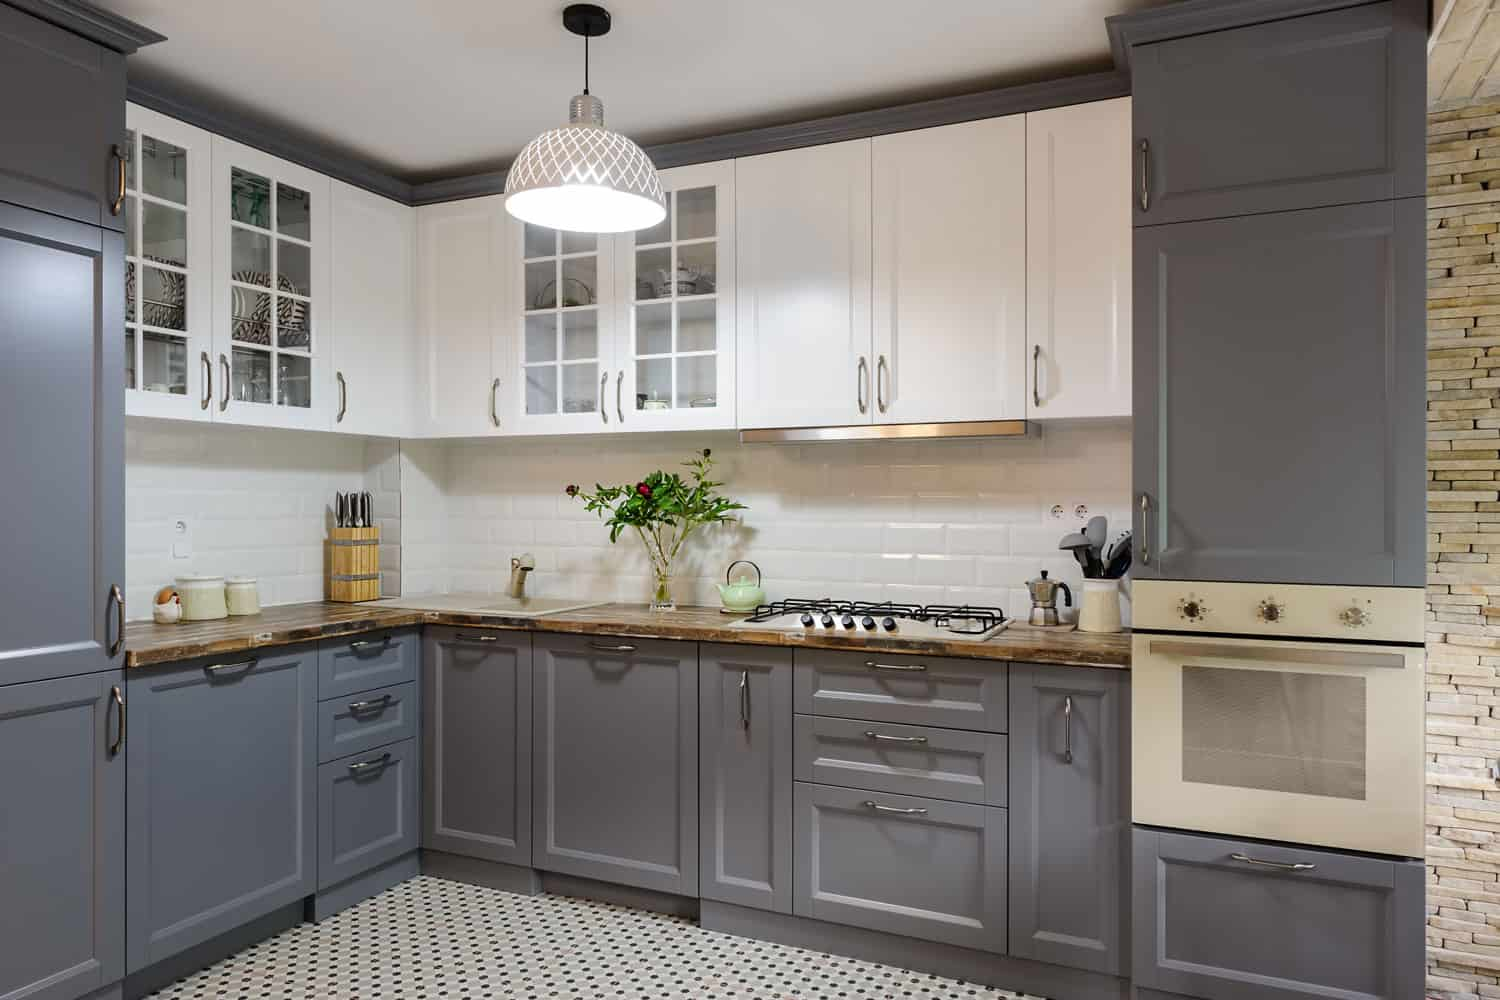 A modern gray themed kitchen area with gray cabinets, white paneled upper cabinets, and a white tiled backsplash, 5 Ways To Waterproof Cabinets Under The Kitchen Sink